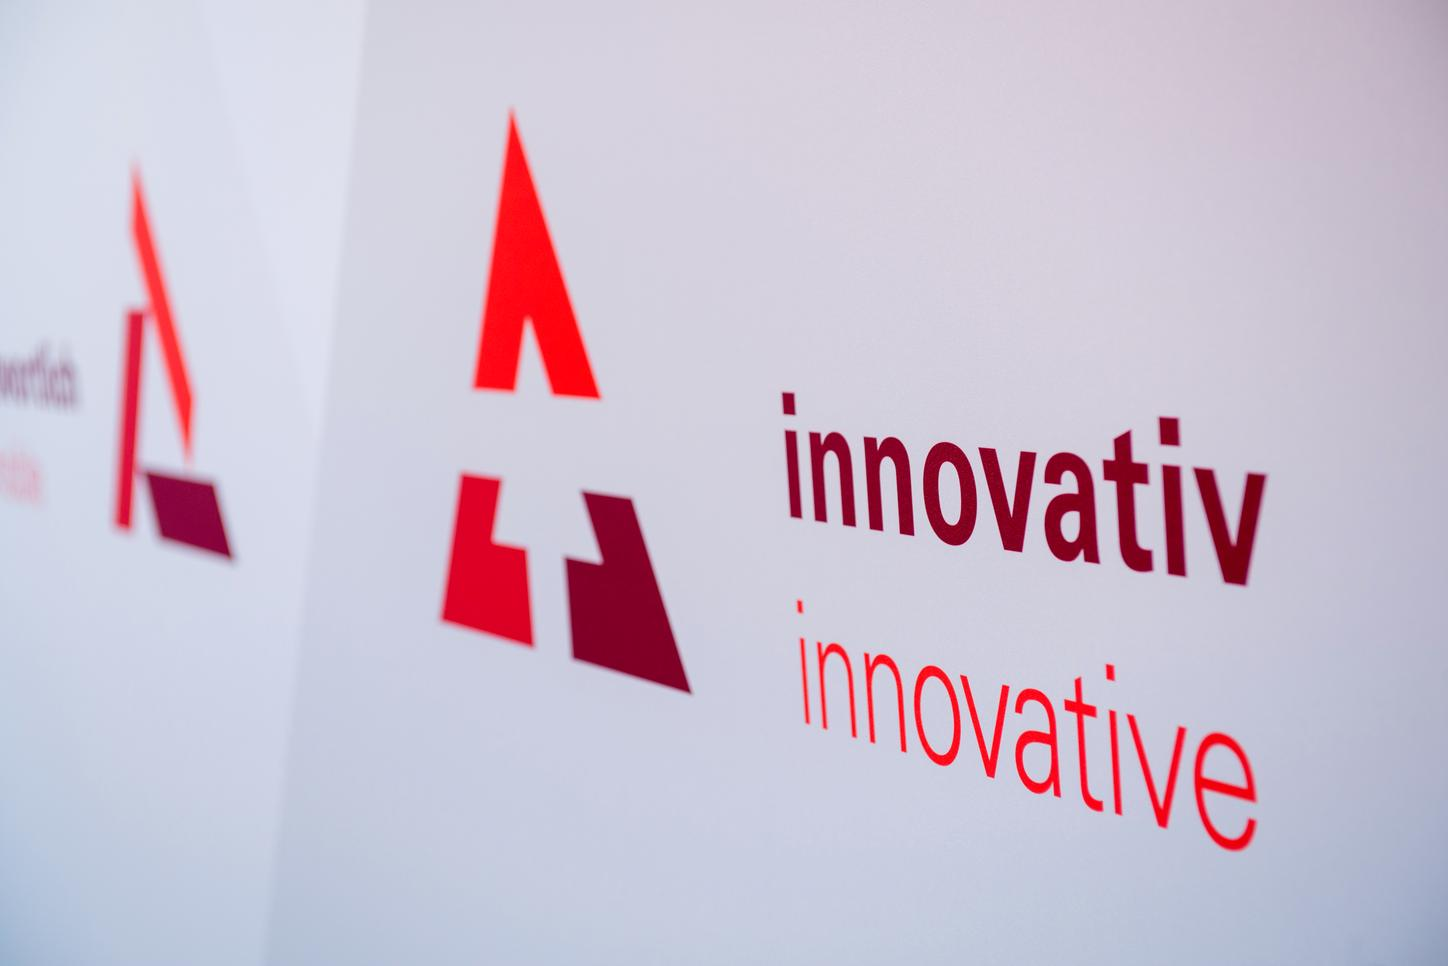 The image shows a logo for innovation.